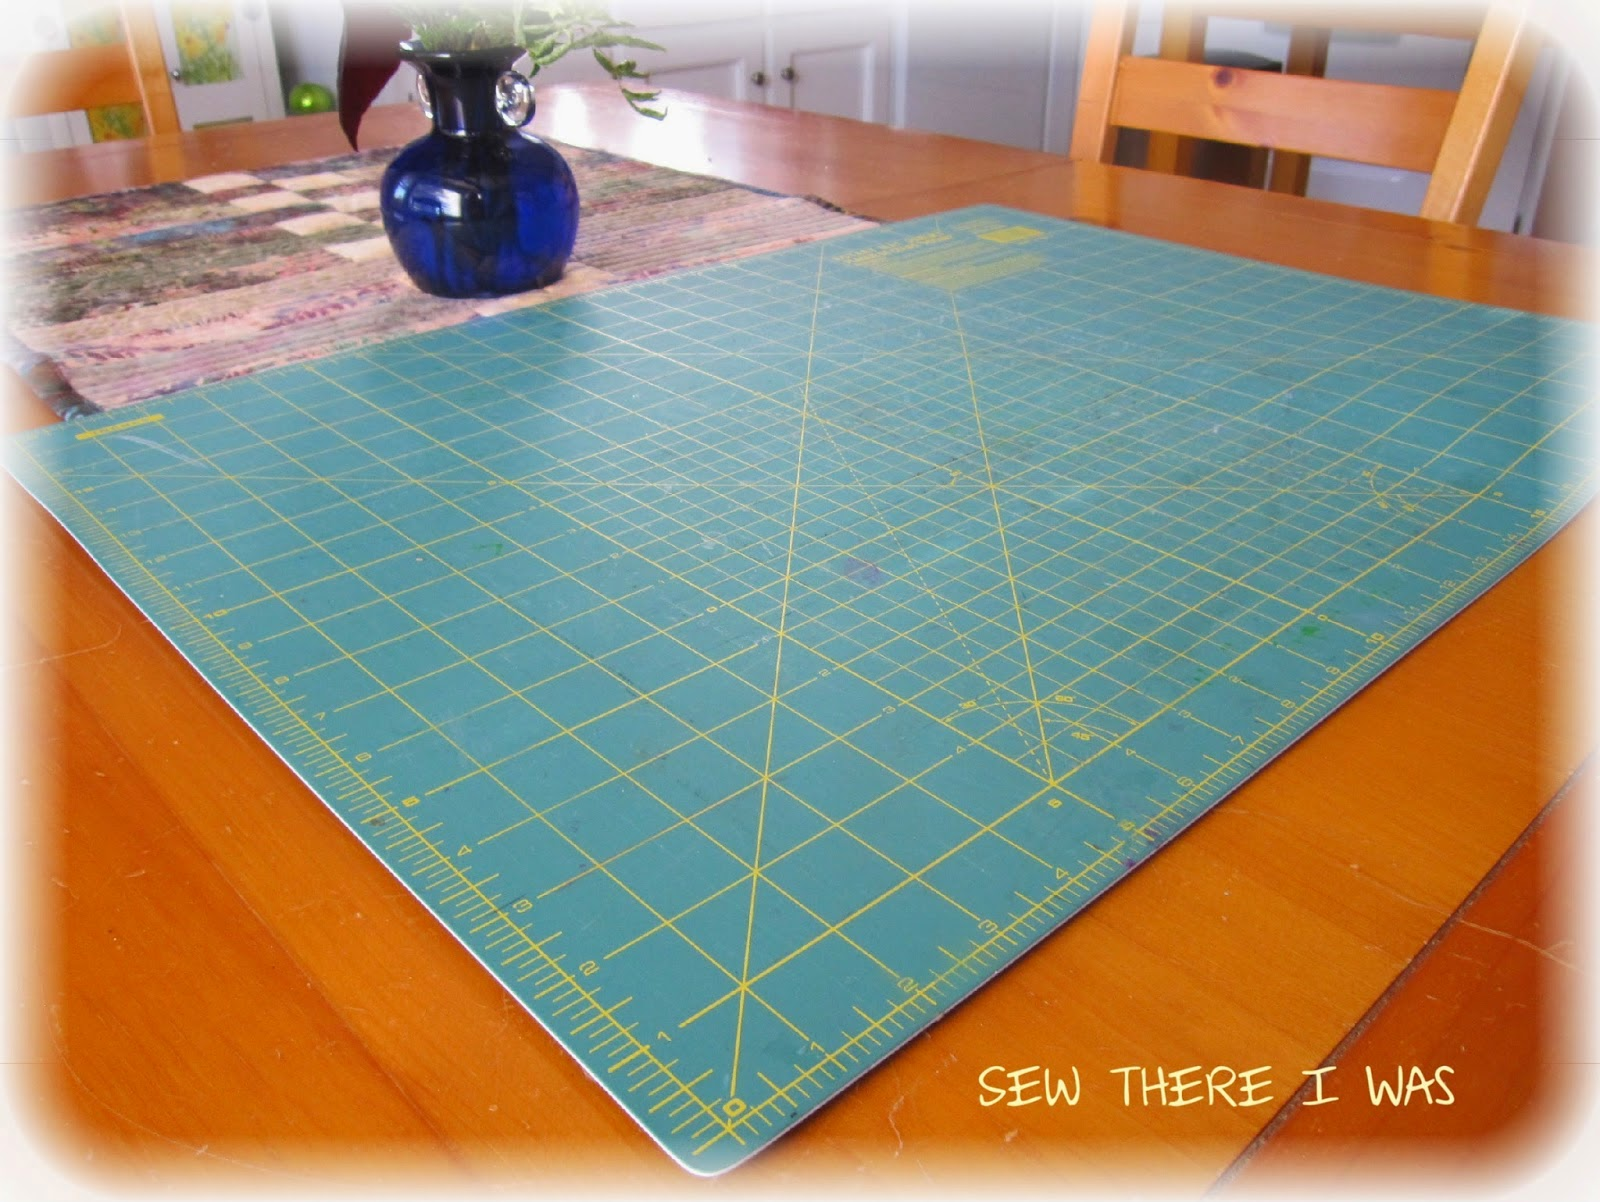 http://backtosew.blogspot.com/2014/06/taking-care-of-your-cutting-mat.html